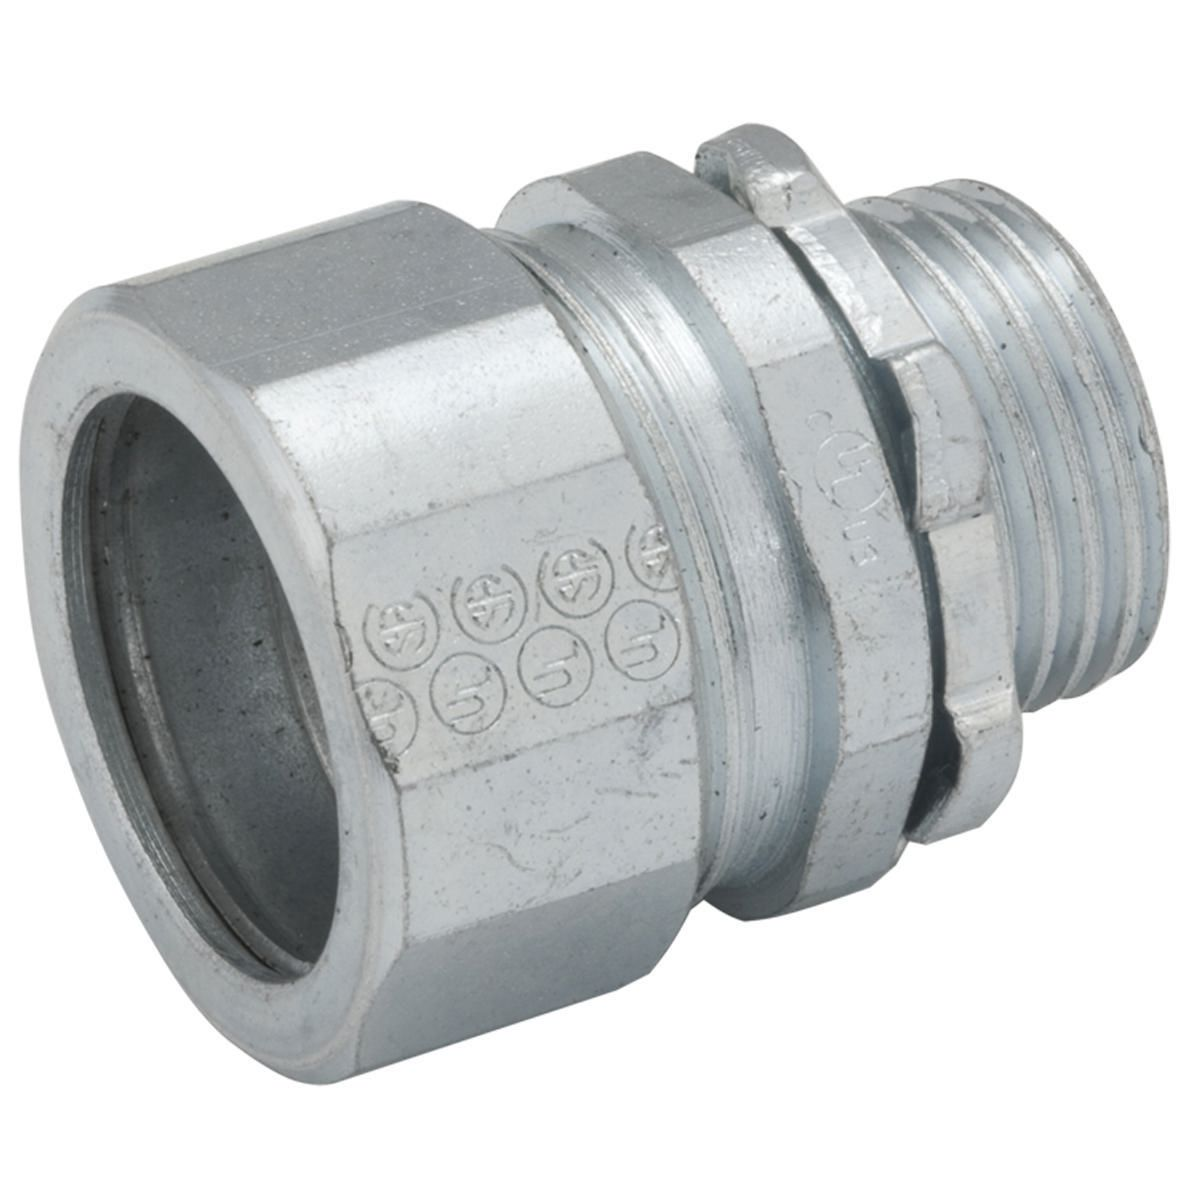 RGD/IMC COMPR CONNECTOR 2 IN STEEL